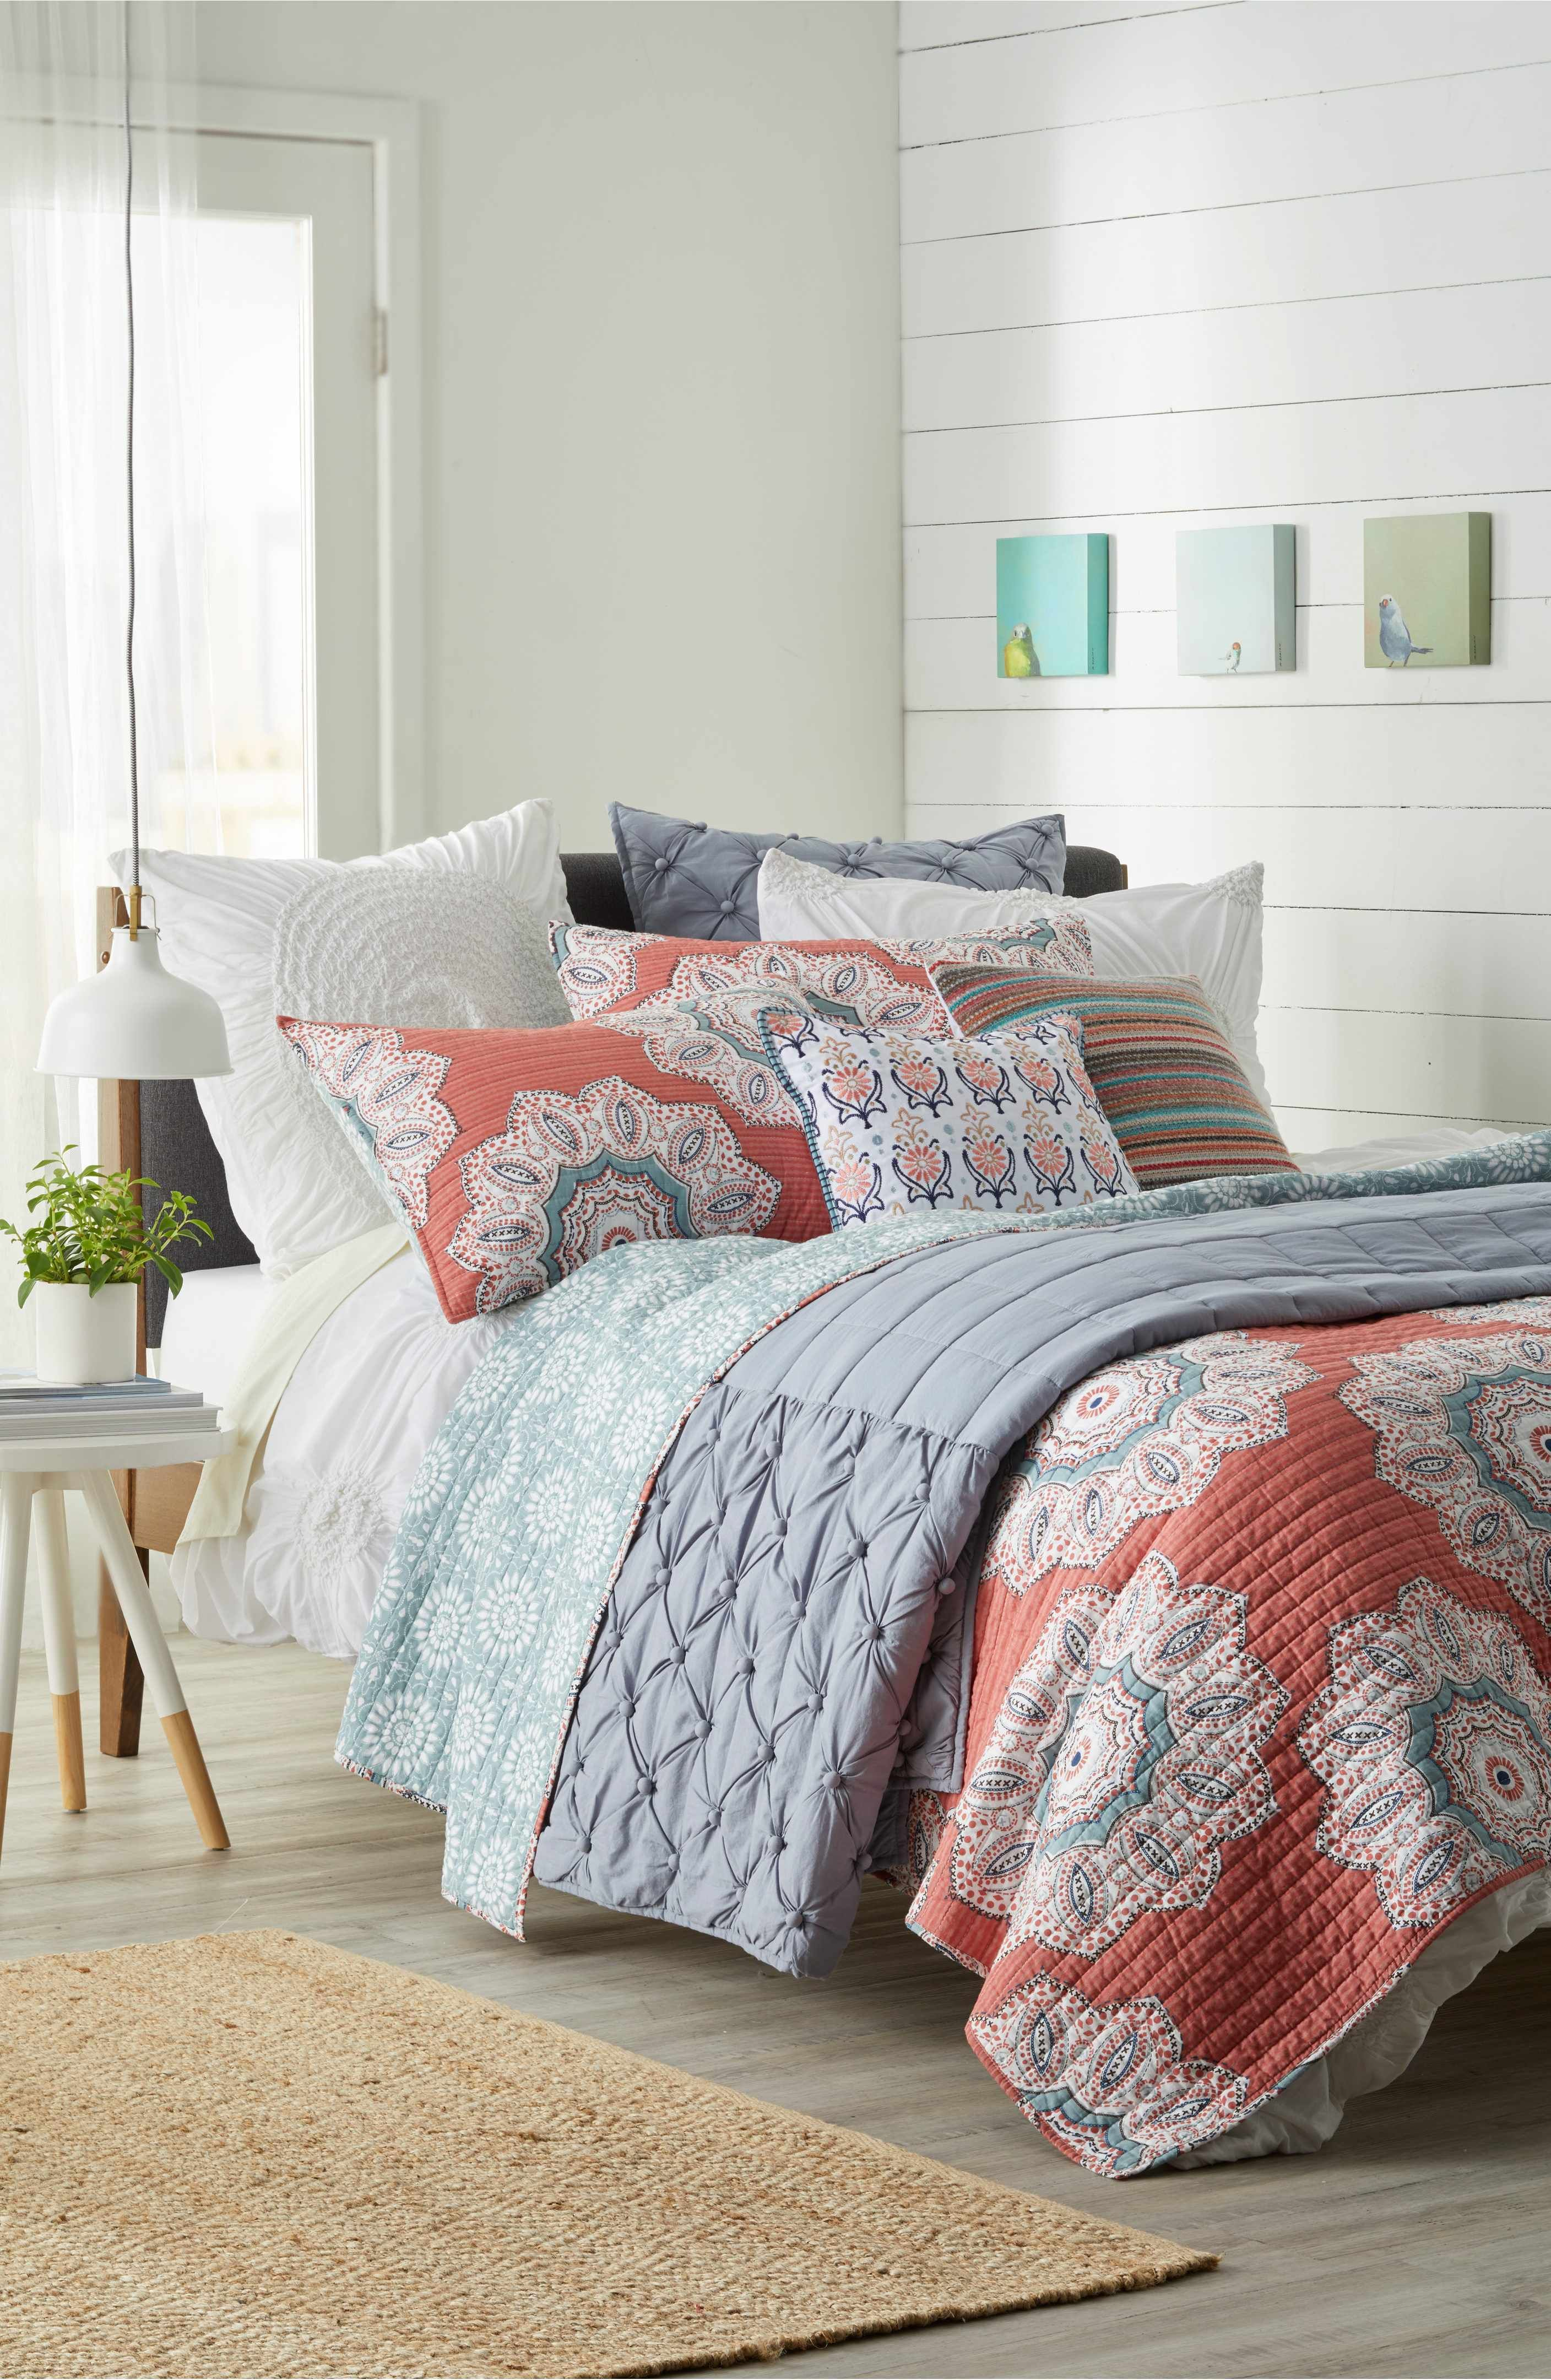 Joanna gaines master bedroom bedding  Main Image  Levtex Aubrie Reversible Quilt  Making a house a home